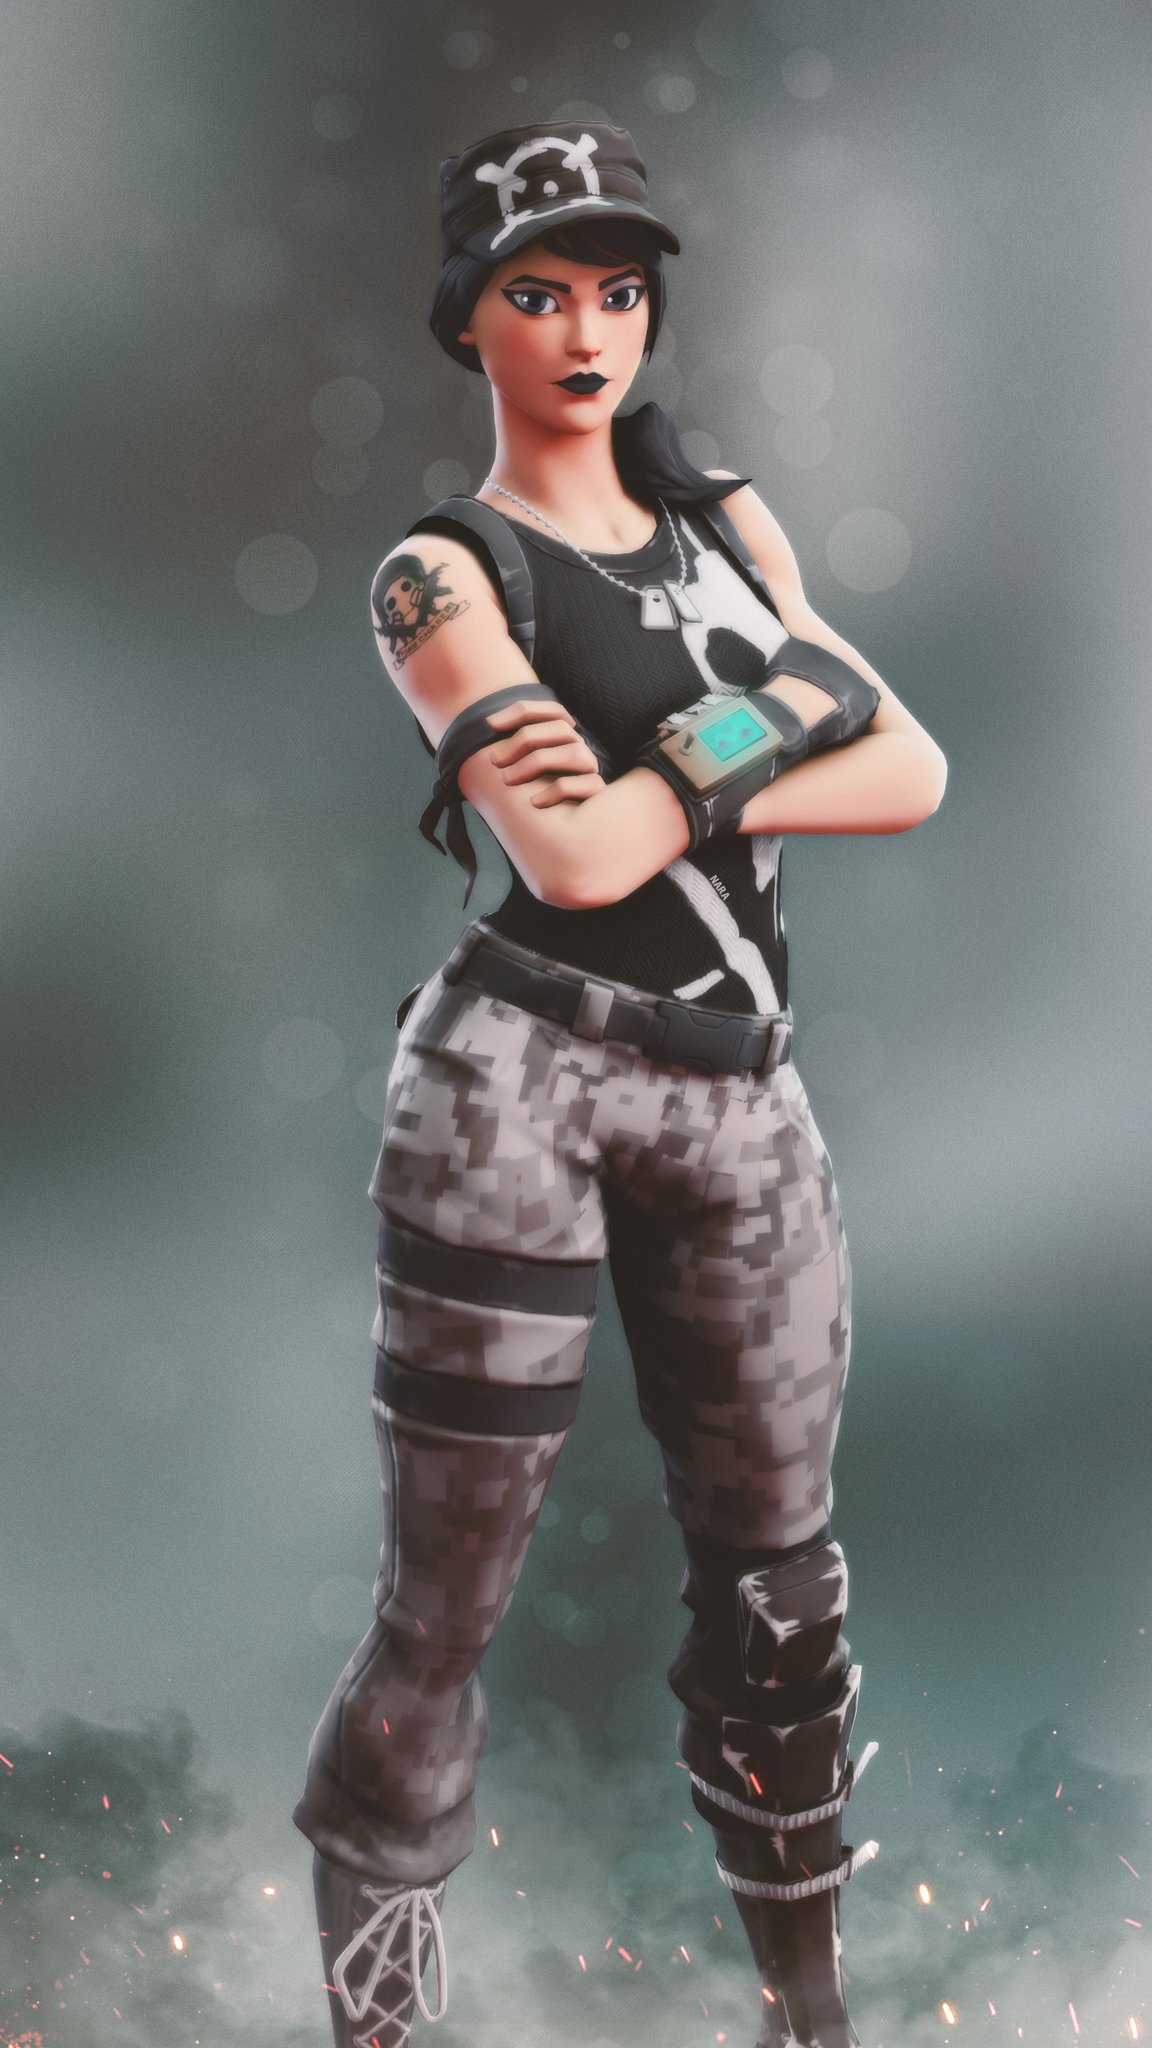 Steam Workshop [FORTNITE] Survival Specialist 1152x2048